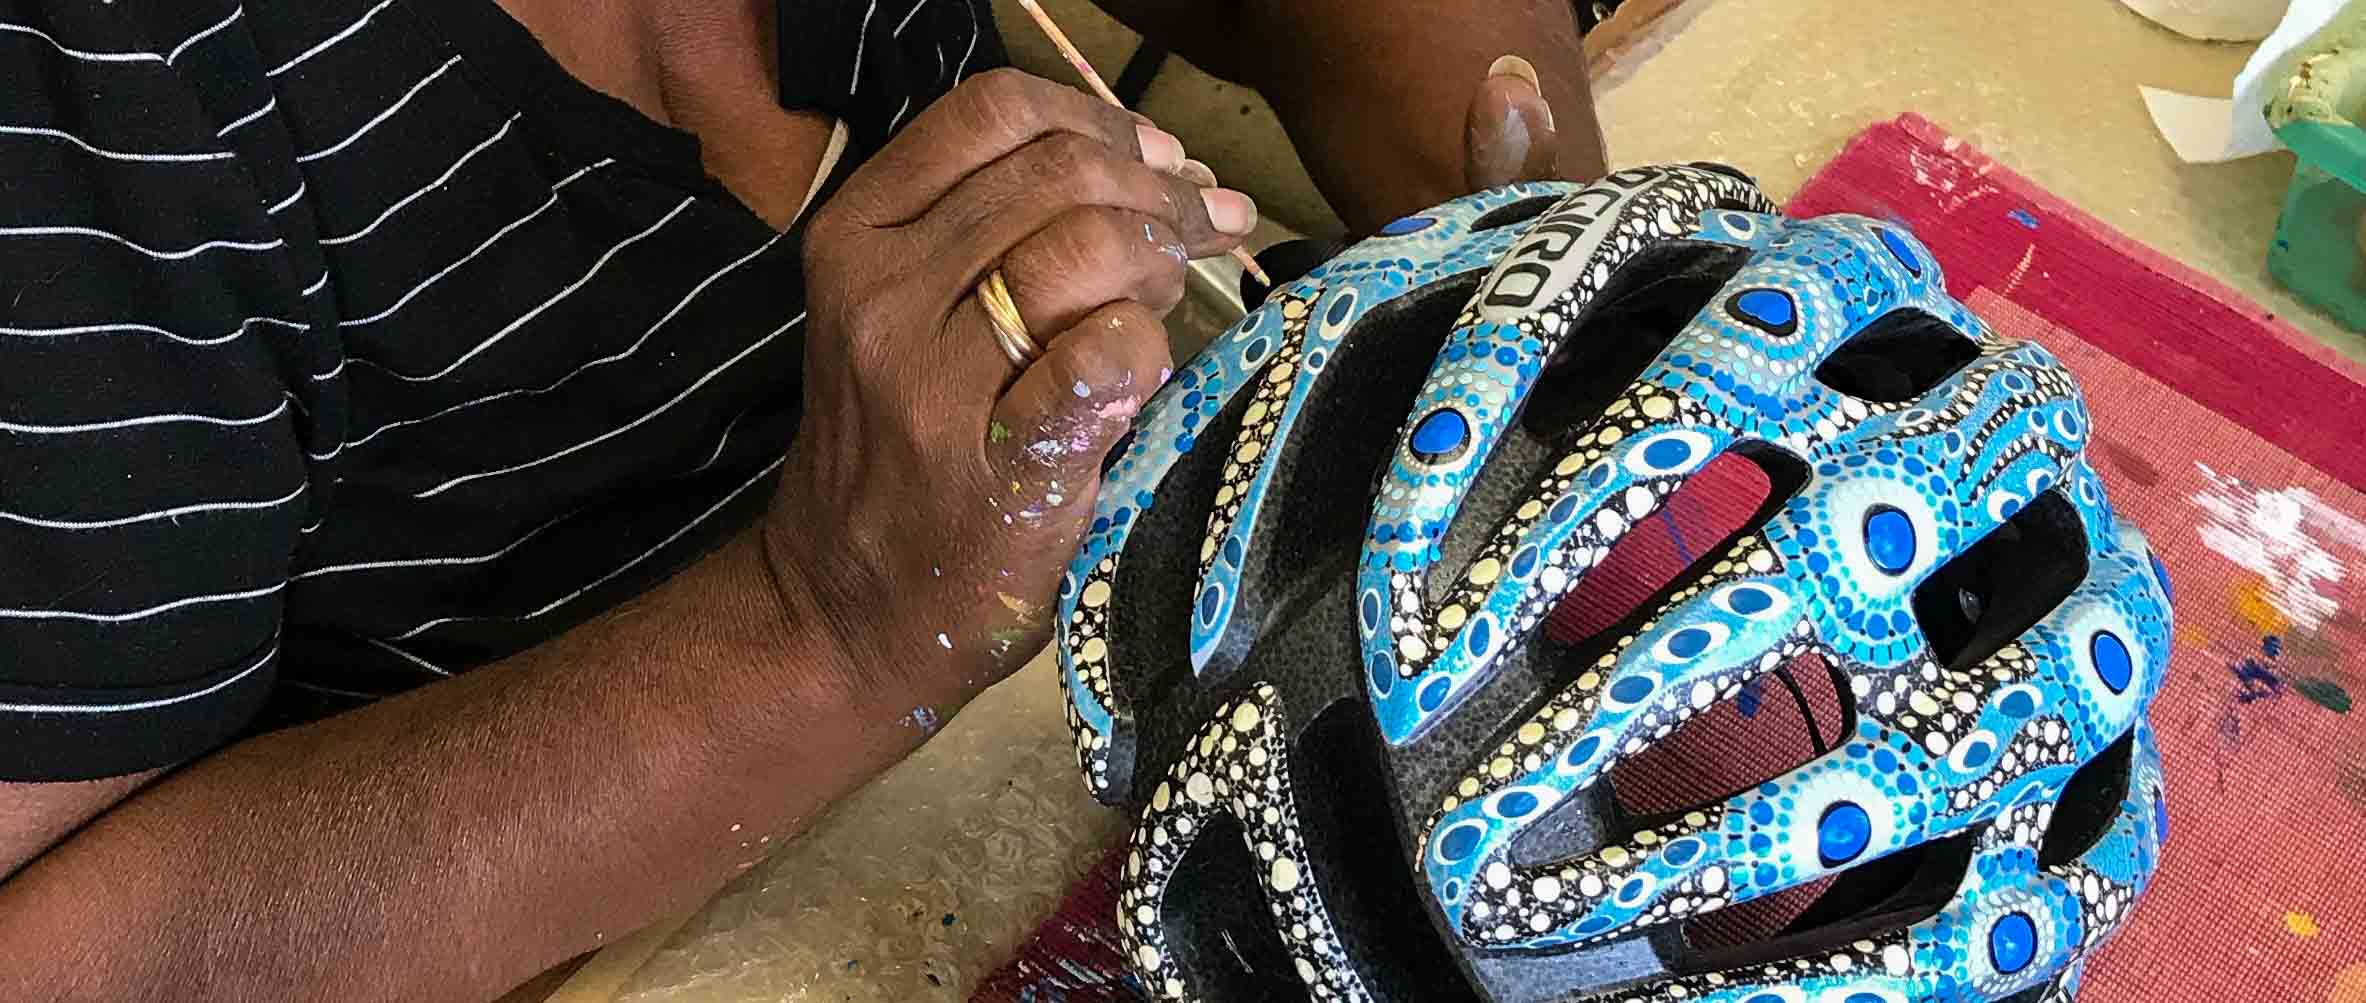 Helping Helmets in progress